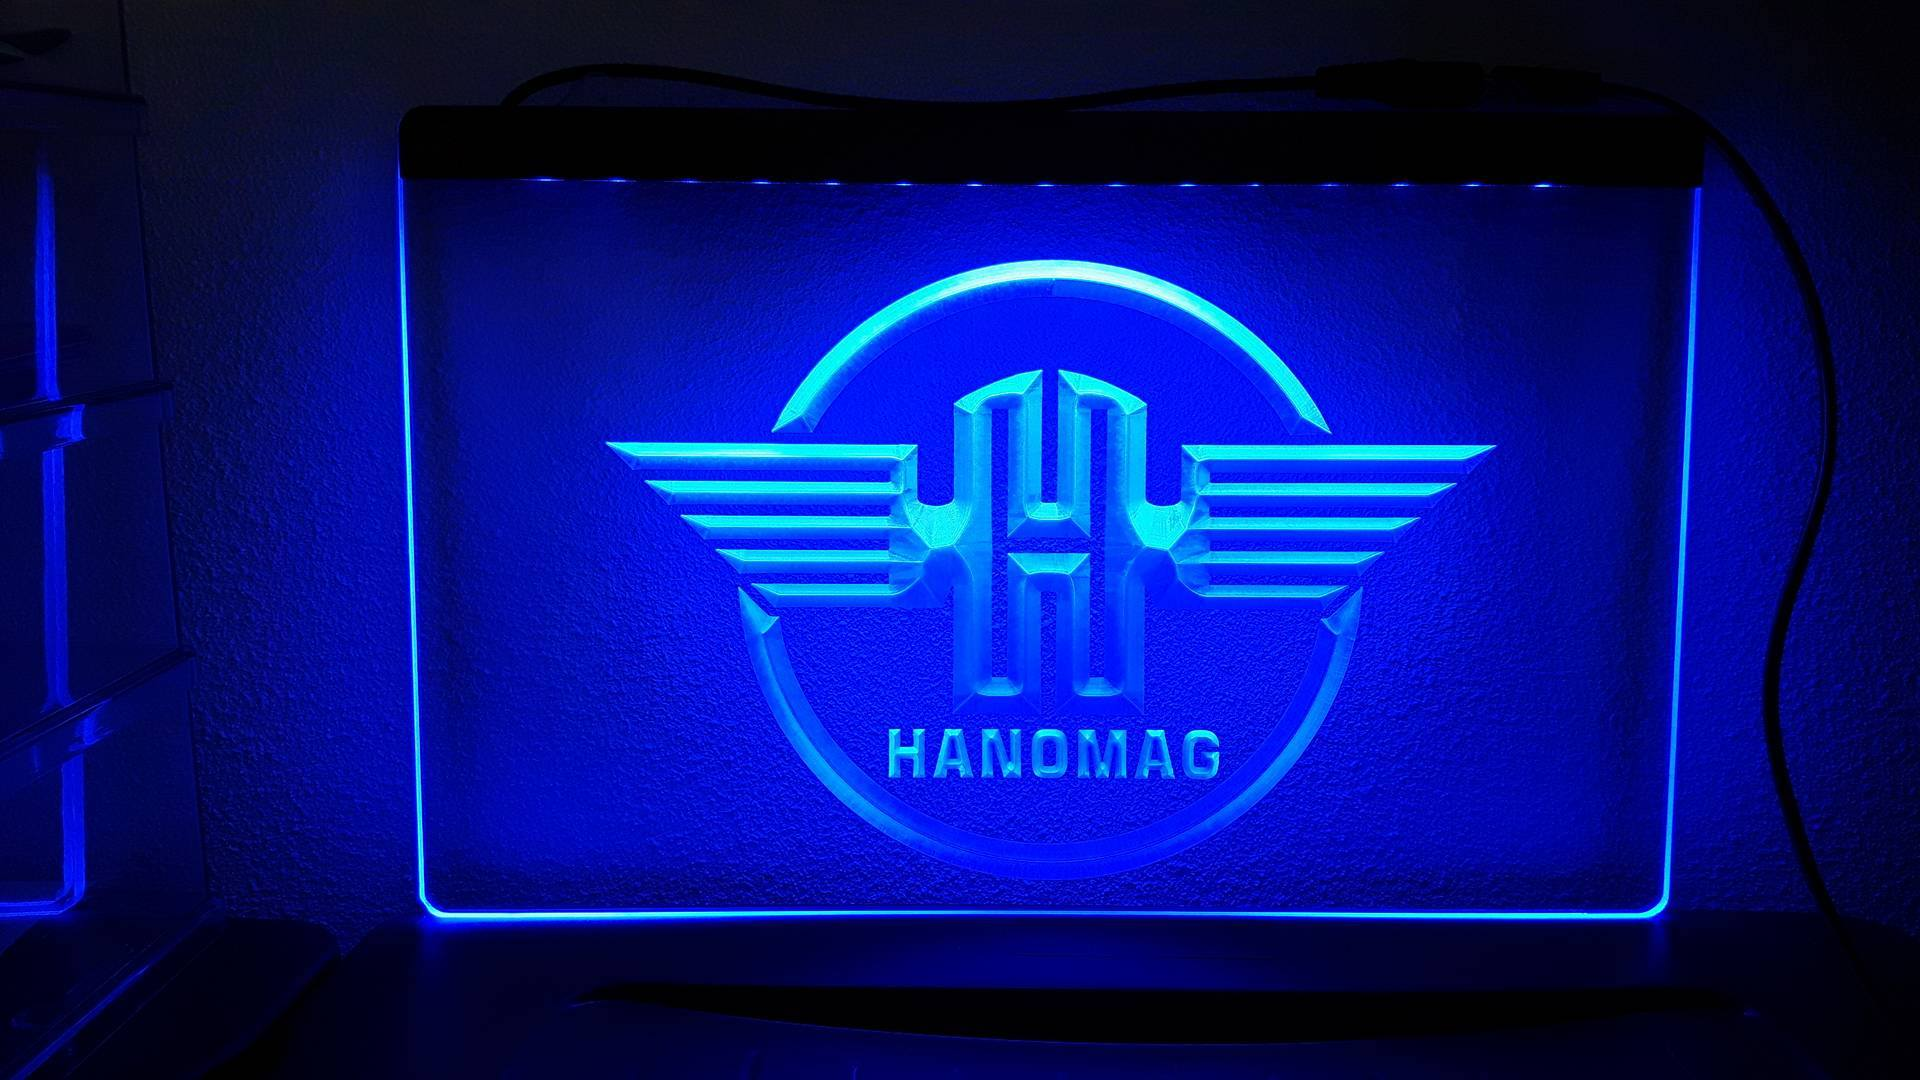 Hanomag tractor logo rond 3d led verlichting americanshop for Tractor verlichting